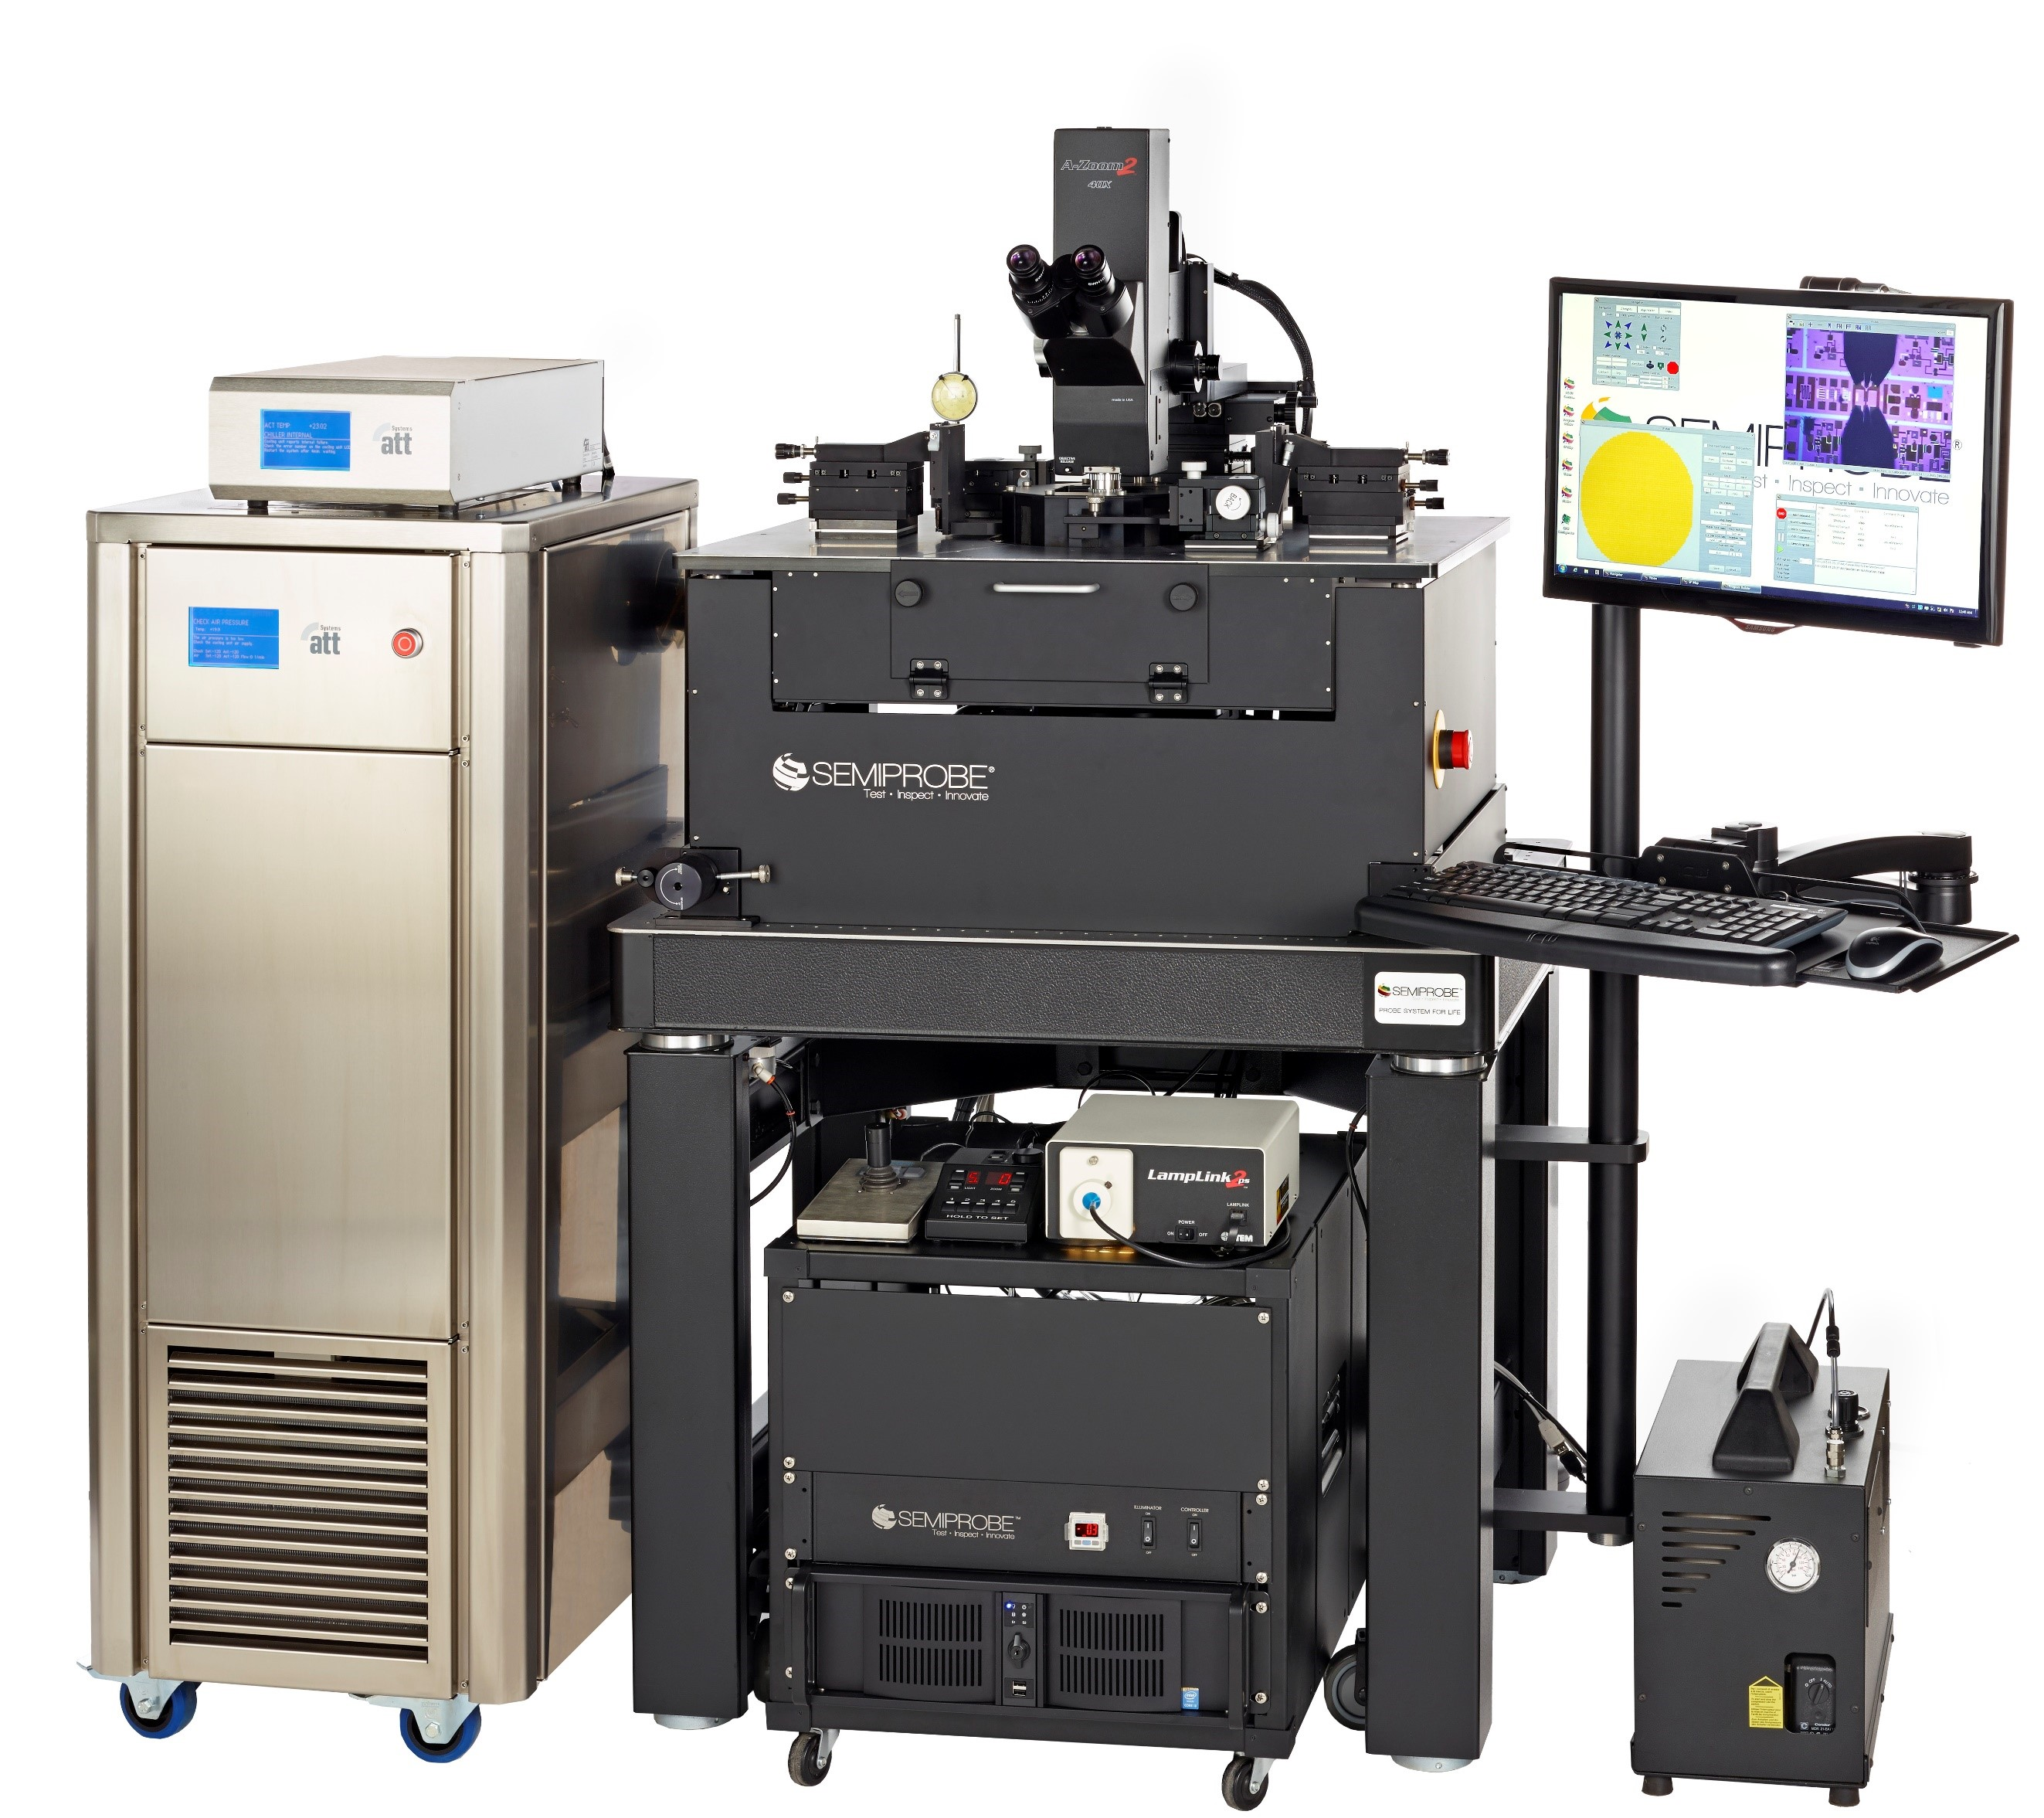 Semiautomatic High Frequency Wafer Prober with RF Probes